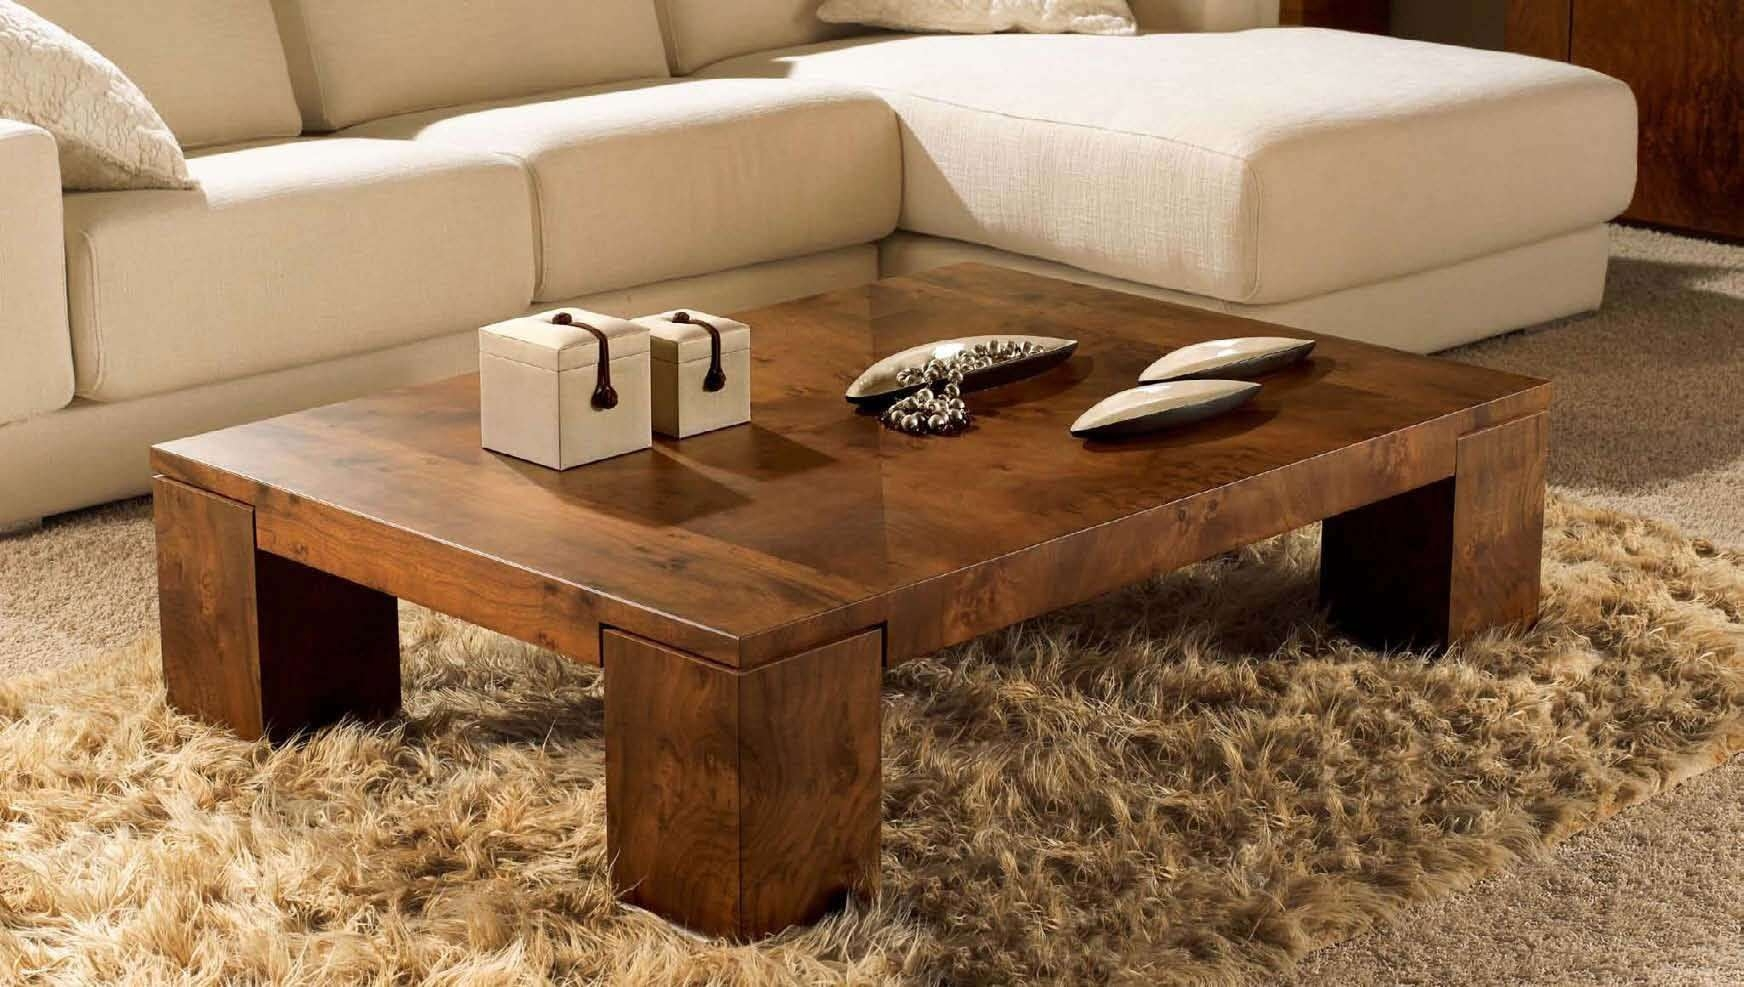 Big Floor Flower Vase Idea Big Vase Decor Set Coffee Tables For Within Most Current Big Square Coffee Tables (View 13 of 20)